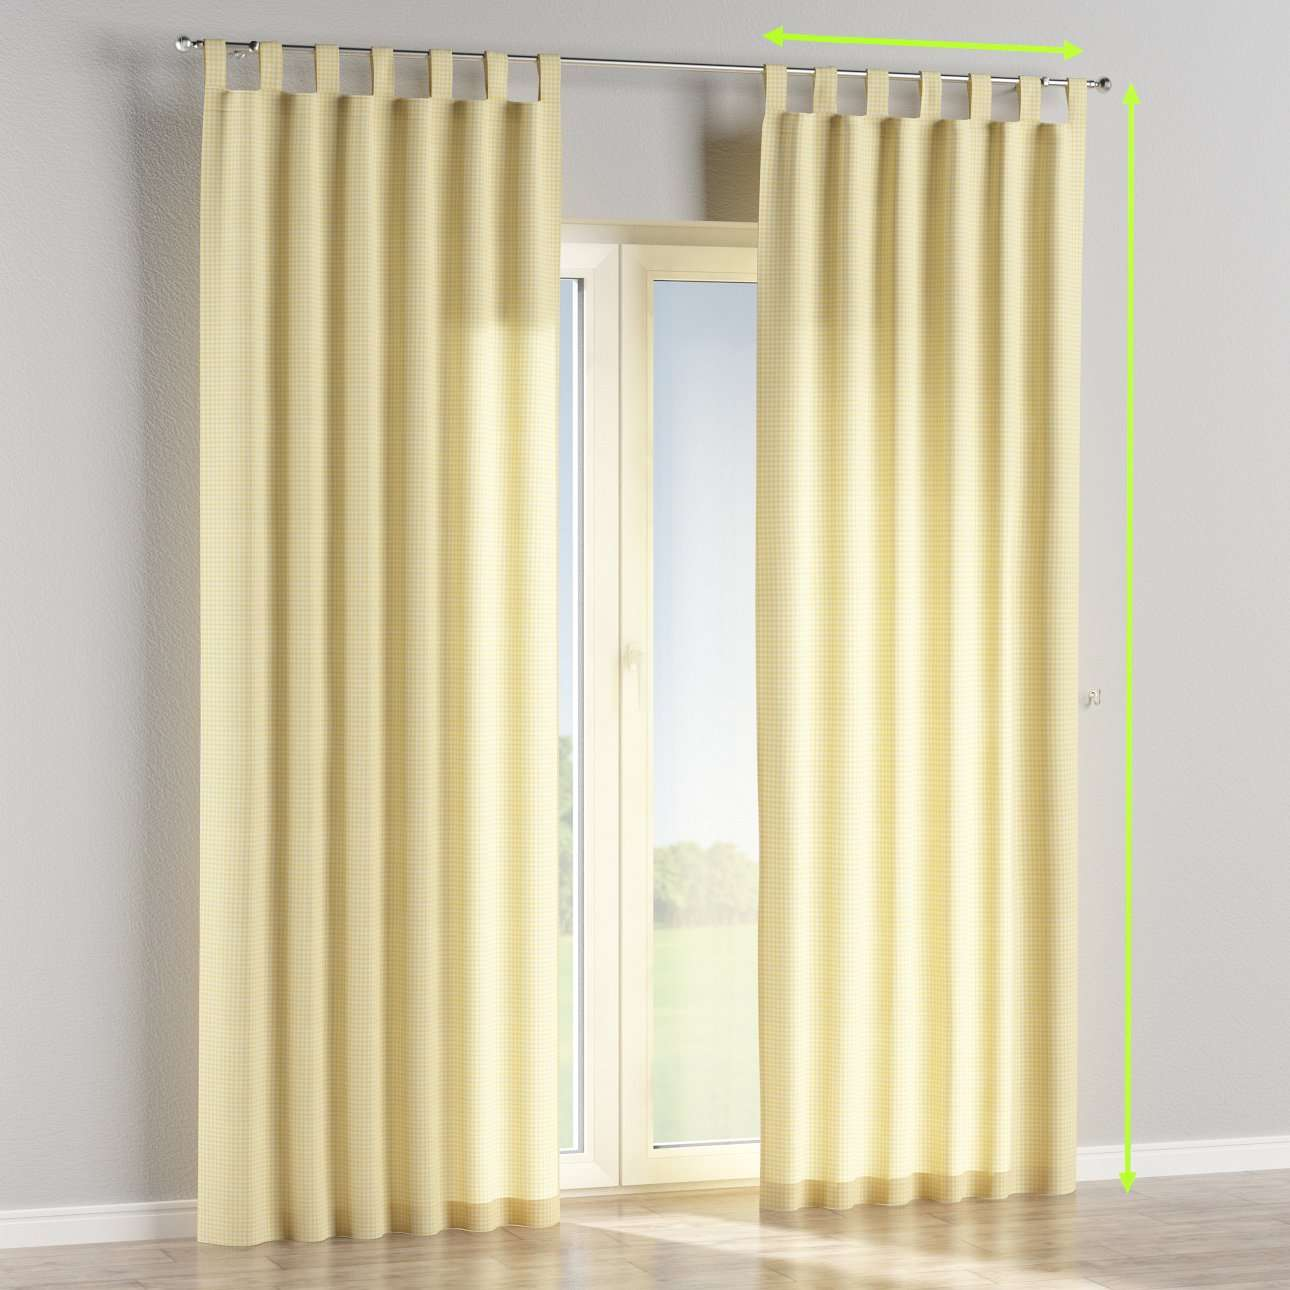 Tab top curtains in collection Ashley, fabric: 137-64